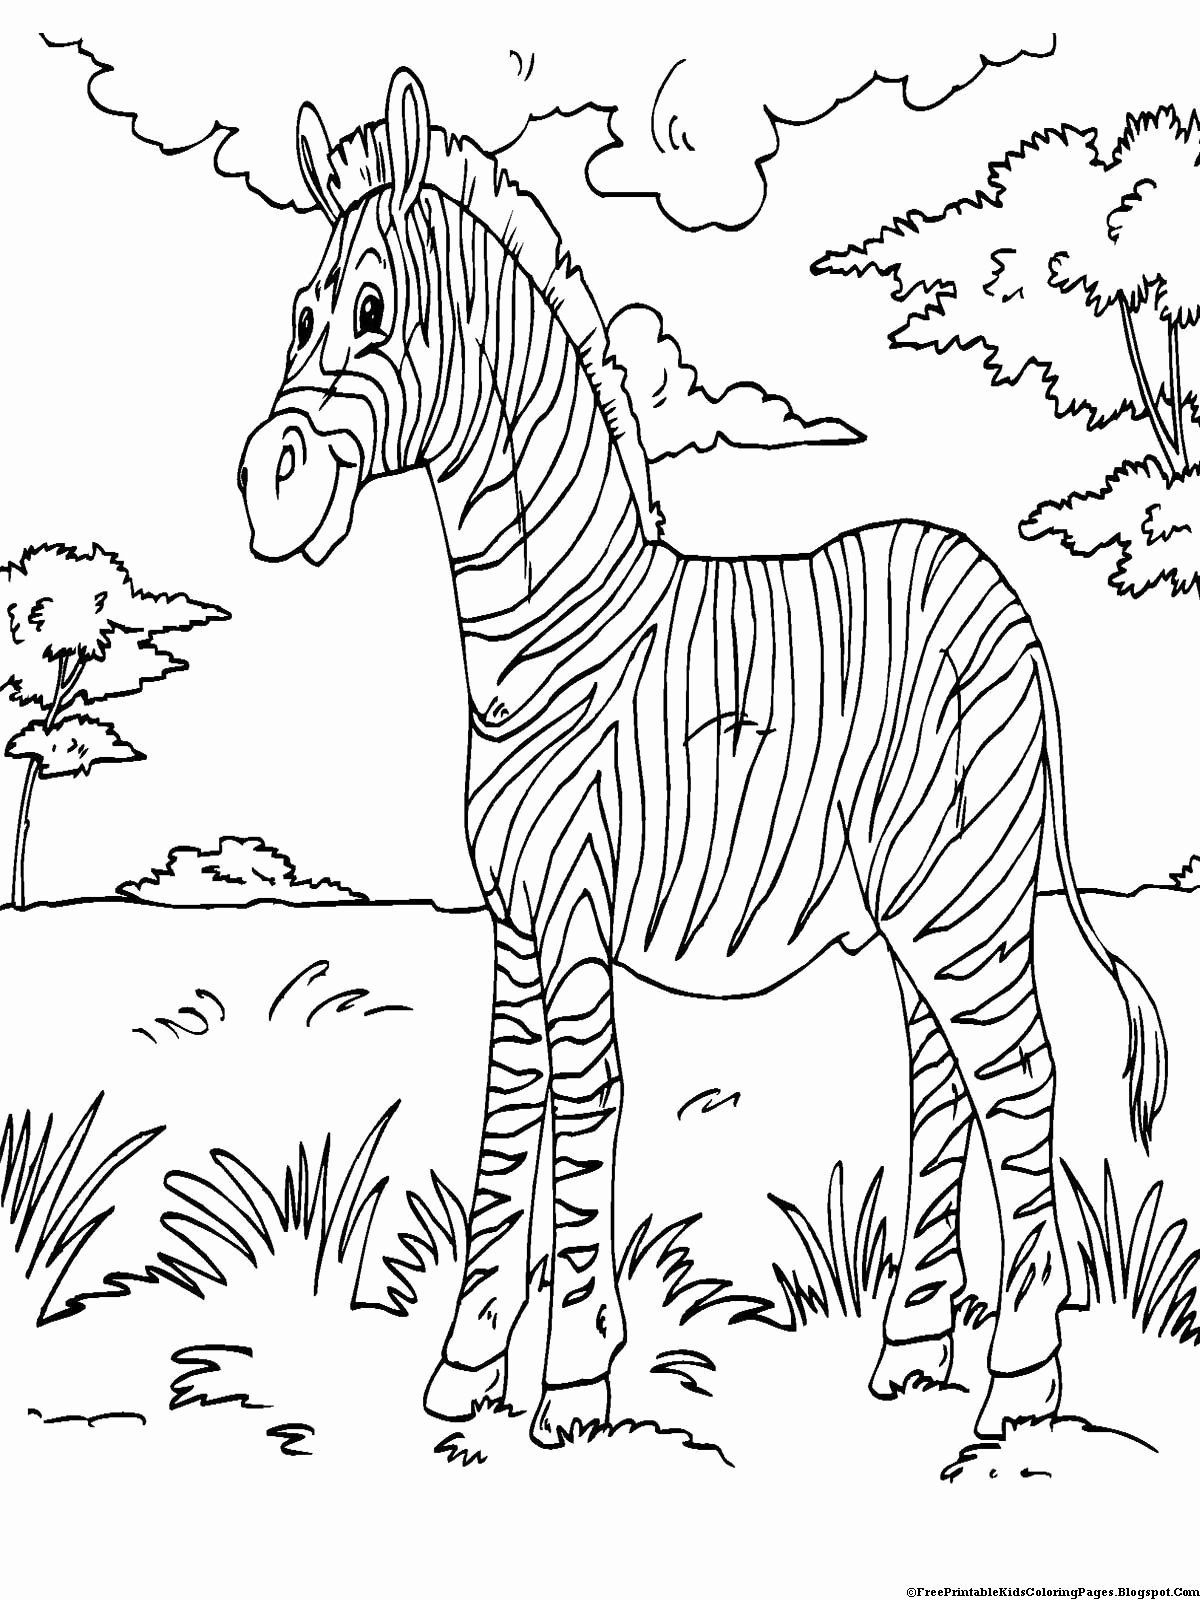 Printable Animal Coloring Sheets Beautiful Zebra Coloring Pages Zebra Warna Binatang